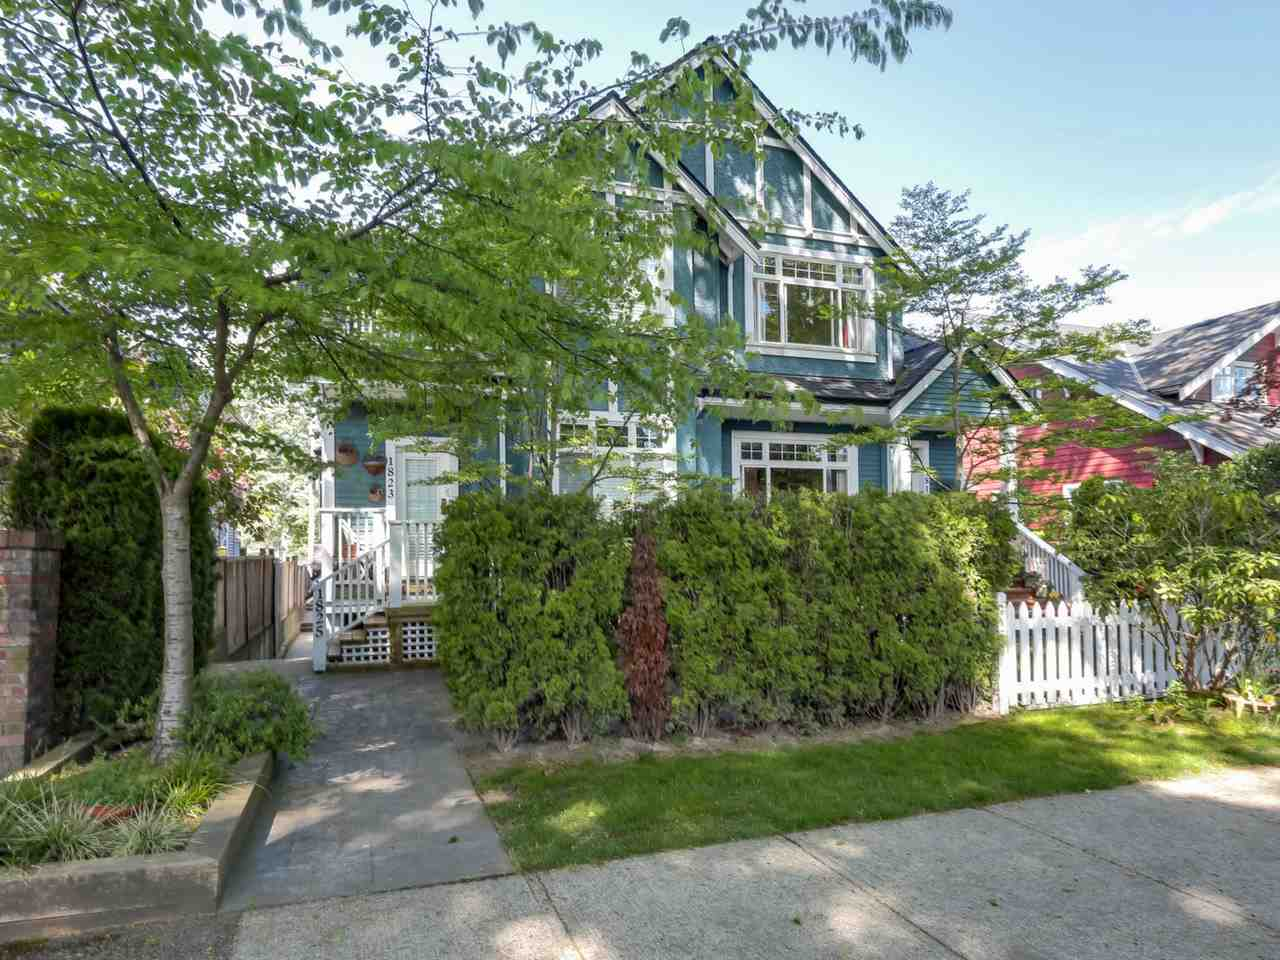 Main Photo: 1825 W 11TH Avenue in Vancouver: Kitsilano Townhouse for sale (Vancouver West)  : MLS(r) # R2061107